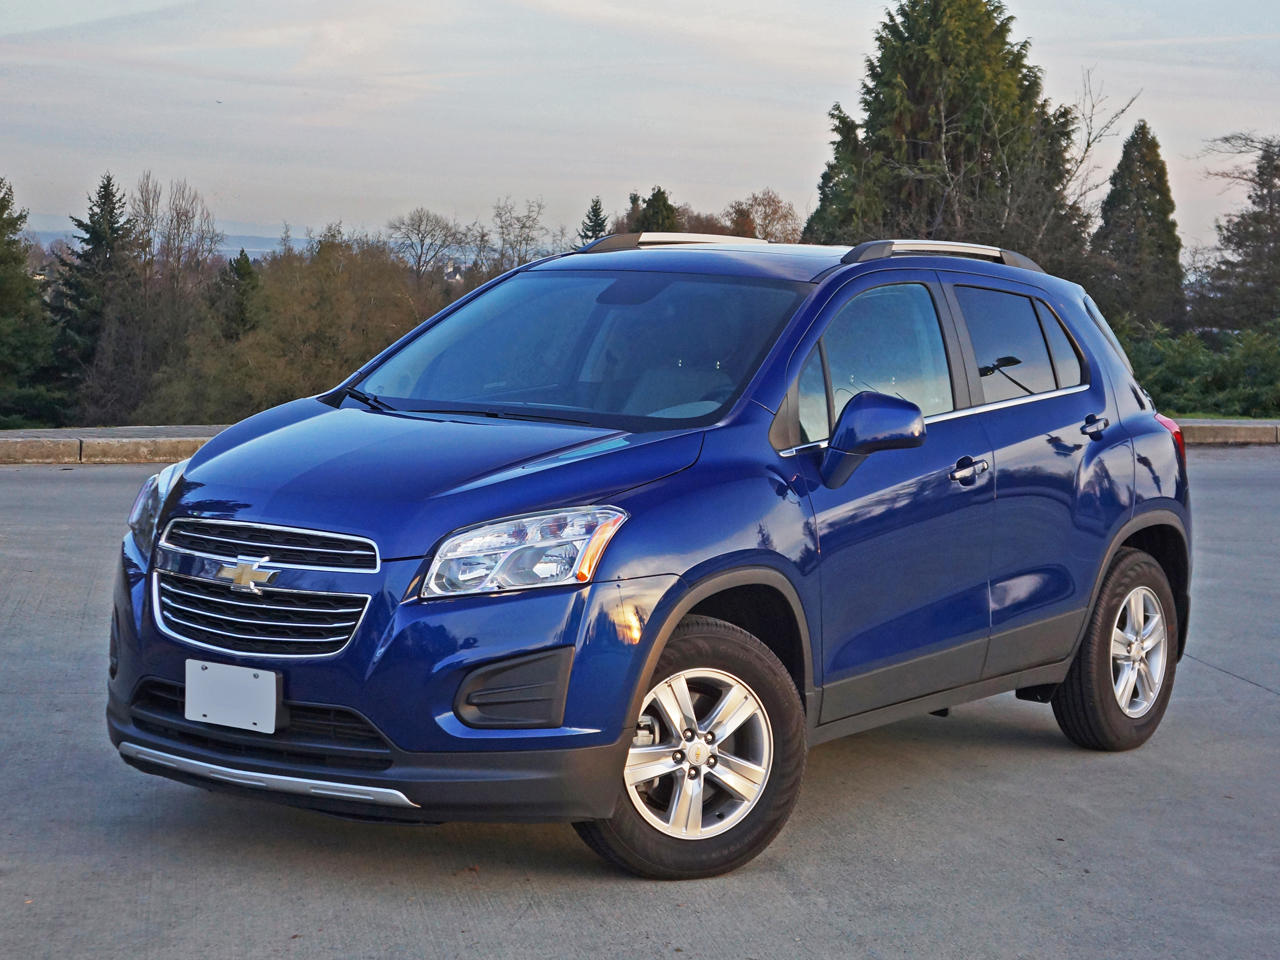 Comparison Chevrolet Trax Suv 2016 Vs Suzuki Grand